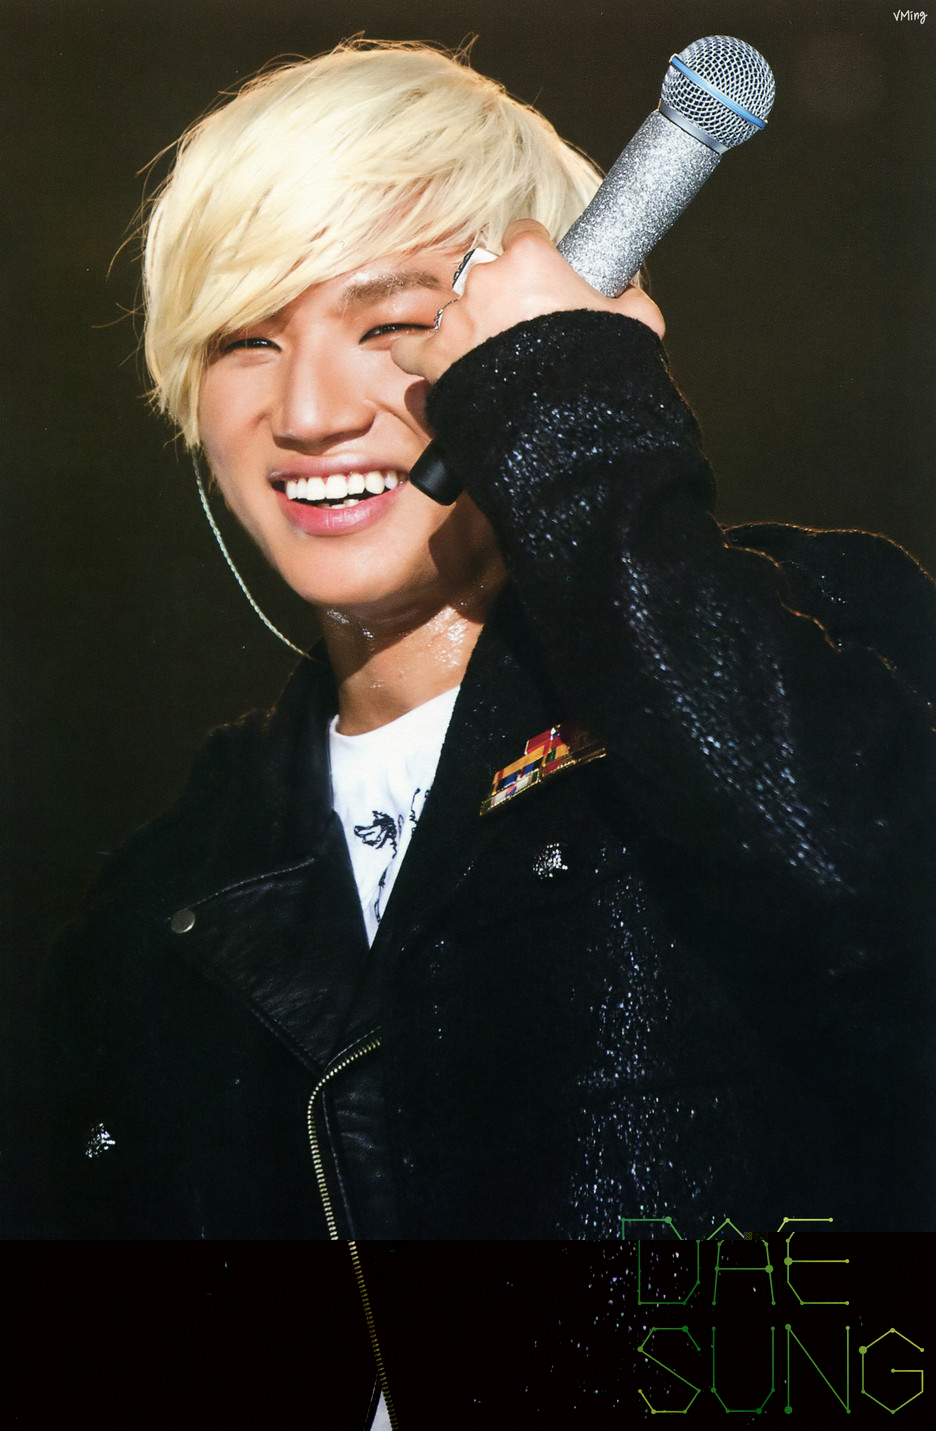 Daesung: Alive Tour in Seoul Photo Book Scans [PHOTOS]  Daesung: Alive Tour in Seoul Photo Book Scans [PHOTOS]  Daesung: Alive Tour in Seoul Photo Book Scans [PHOTOS]  Daesung: Alive Tour in Seoul Photo Book Scans [PHOTOS]  Daesung: Alive Tour in Seoul Photo Book Scans [PHOTOS]  Daesung: Alive Tour in Seoul Photo Book Scans [PHOTOS]  Daesung: Alive Tour in Seoul Photo Book Scans [PHOTOS]  Daesung: Alive Tour in Seoul Photo Book Scans [PHOTOS]  Daesung: Alive Tour in Seoul Photo Book Scans [PHOTOS]  Daesung: Alive Tour in Seoul Photo Book Scans [PHOTOS]  Daesung: Alive Tour in Seoul Photo Book Scans [PHOTOS]  Daesung: Alive Tour in Seoul Photo Book Scans [PHOTOS]  Daesung: Alive Tour in Seoul Photo Book Scans [PHOTOS]  Daesung: Alive Tour in Seoul Photo Book Scans [PHOTOS]